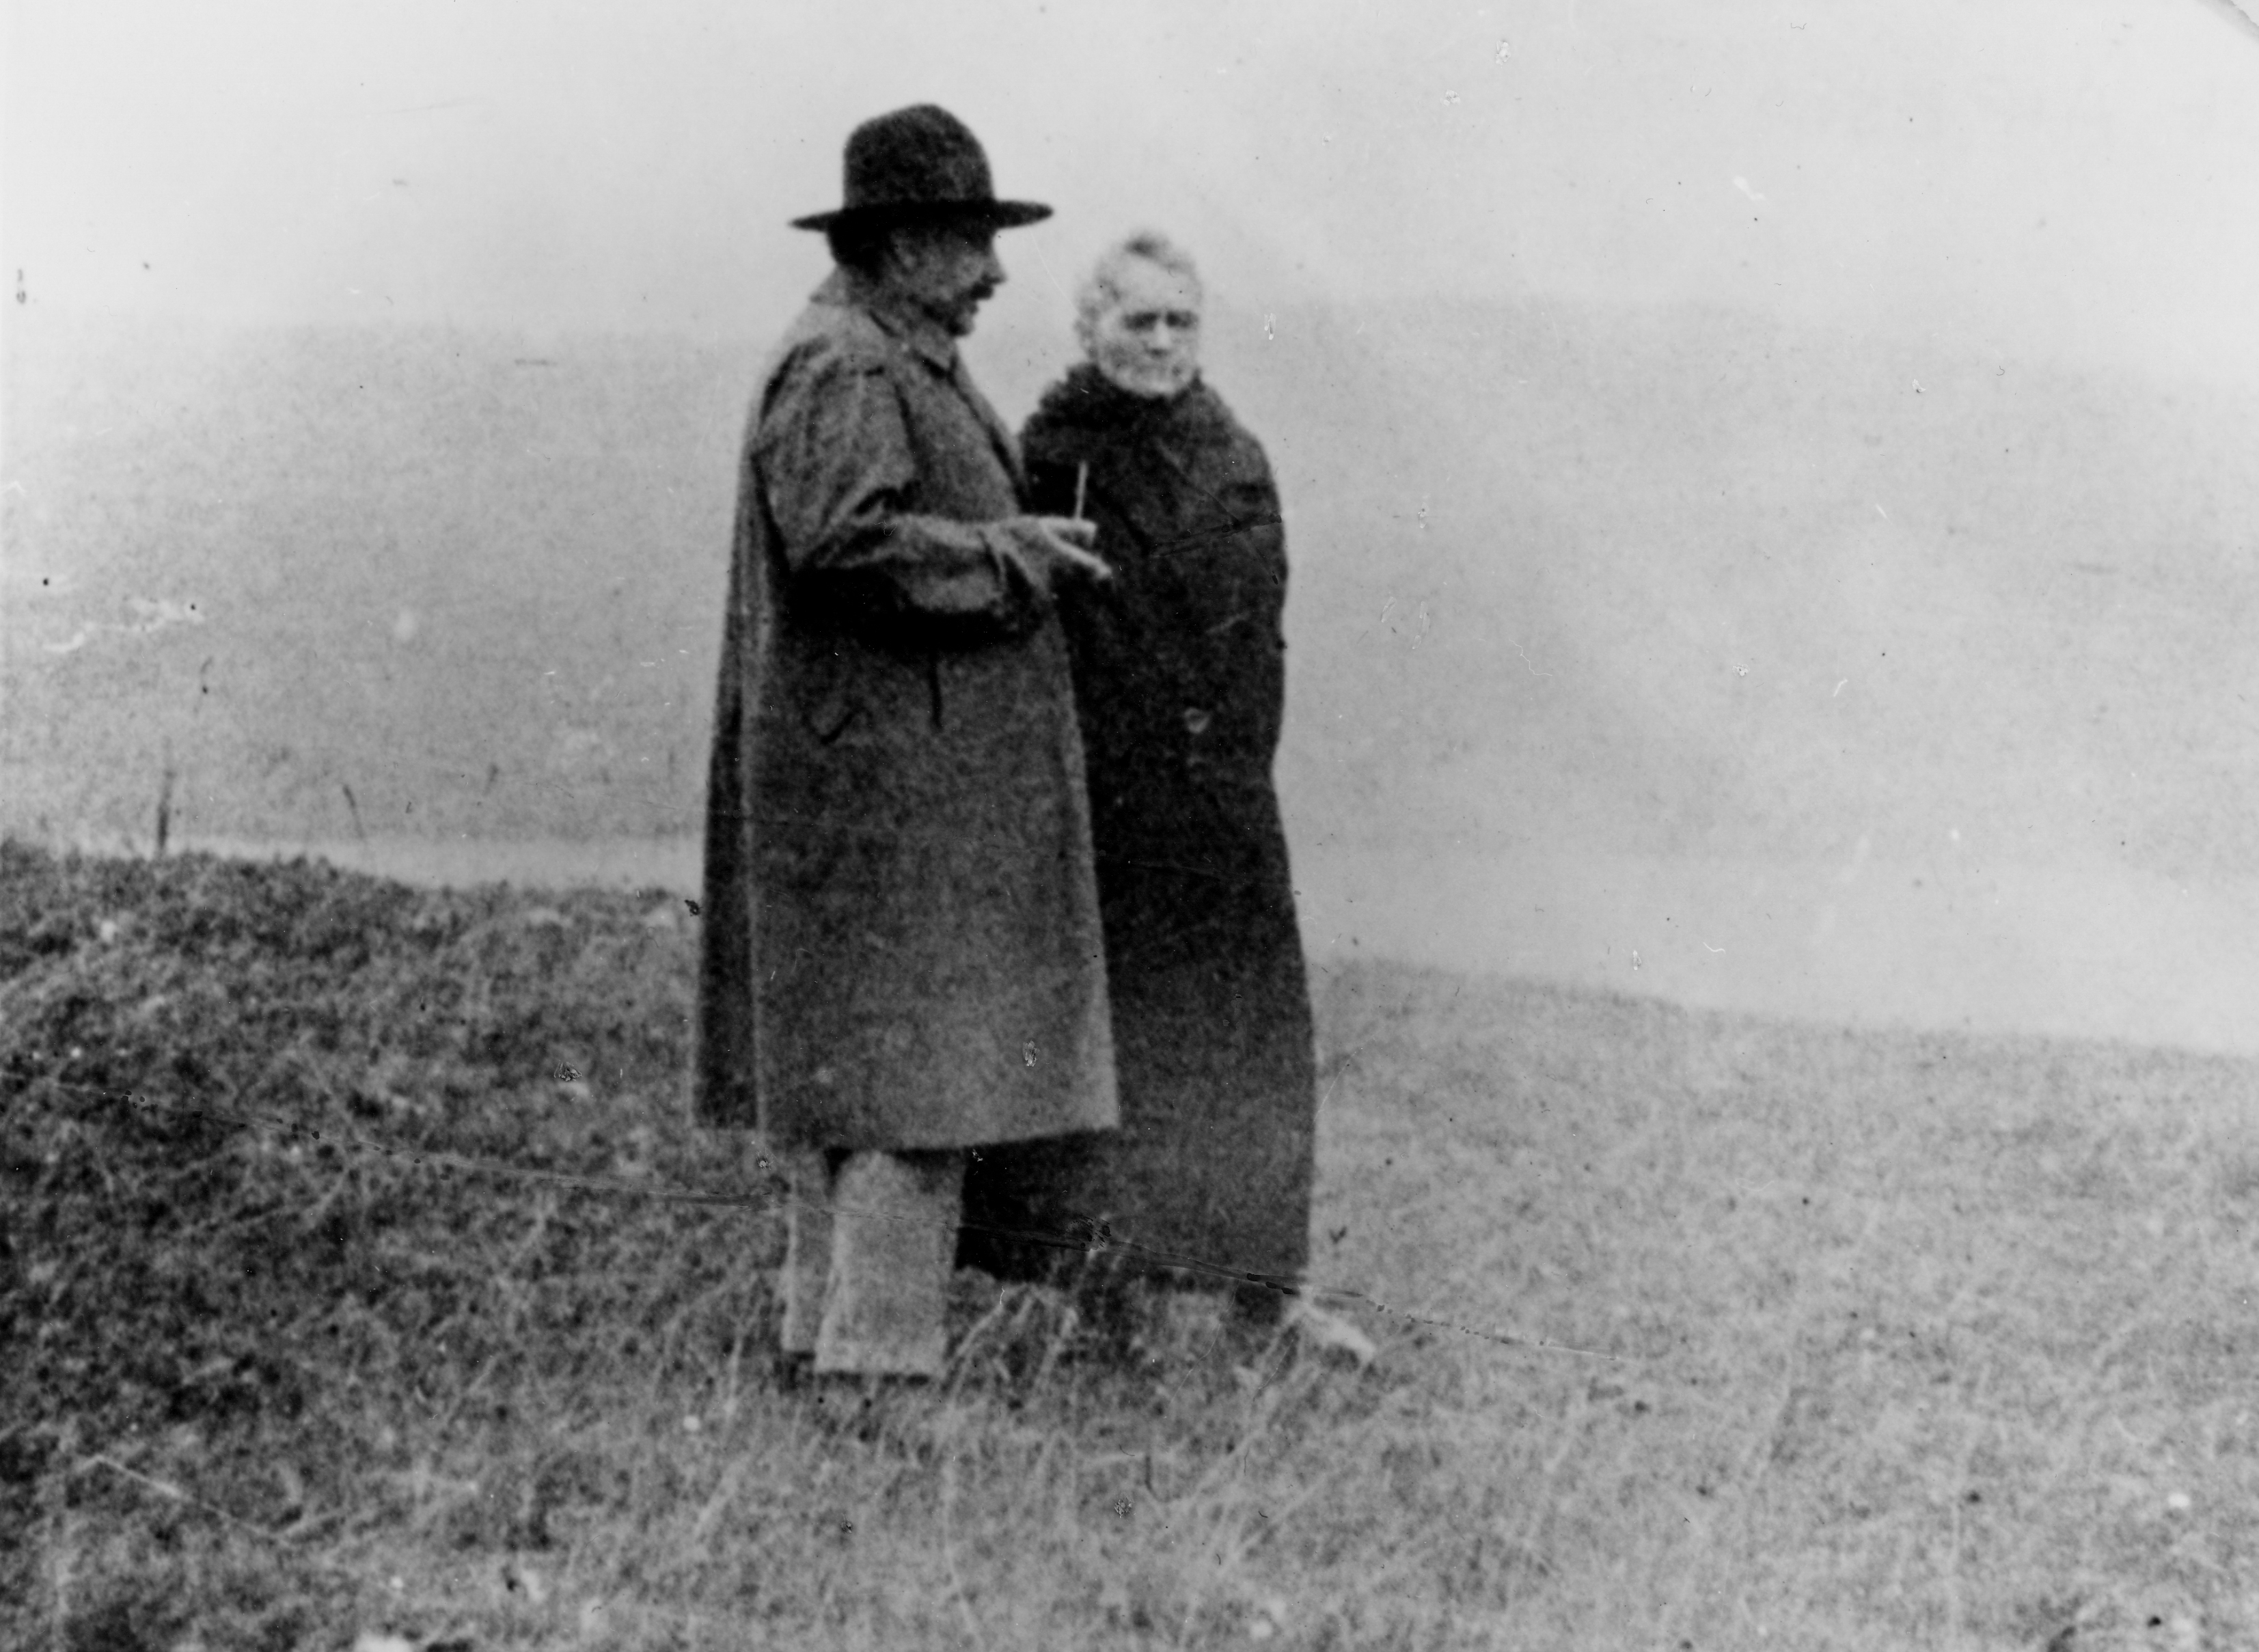 Albert Einstein (left) and Marie Curie (right) conversing by a lake in 1929